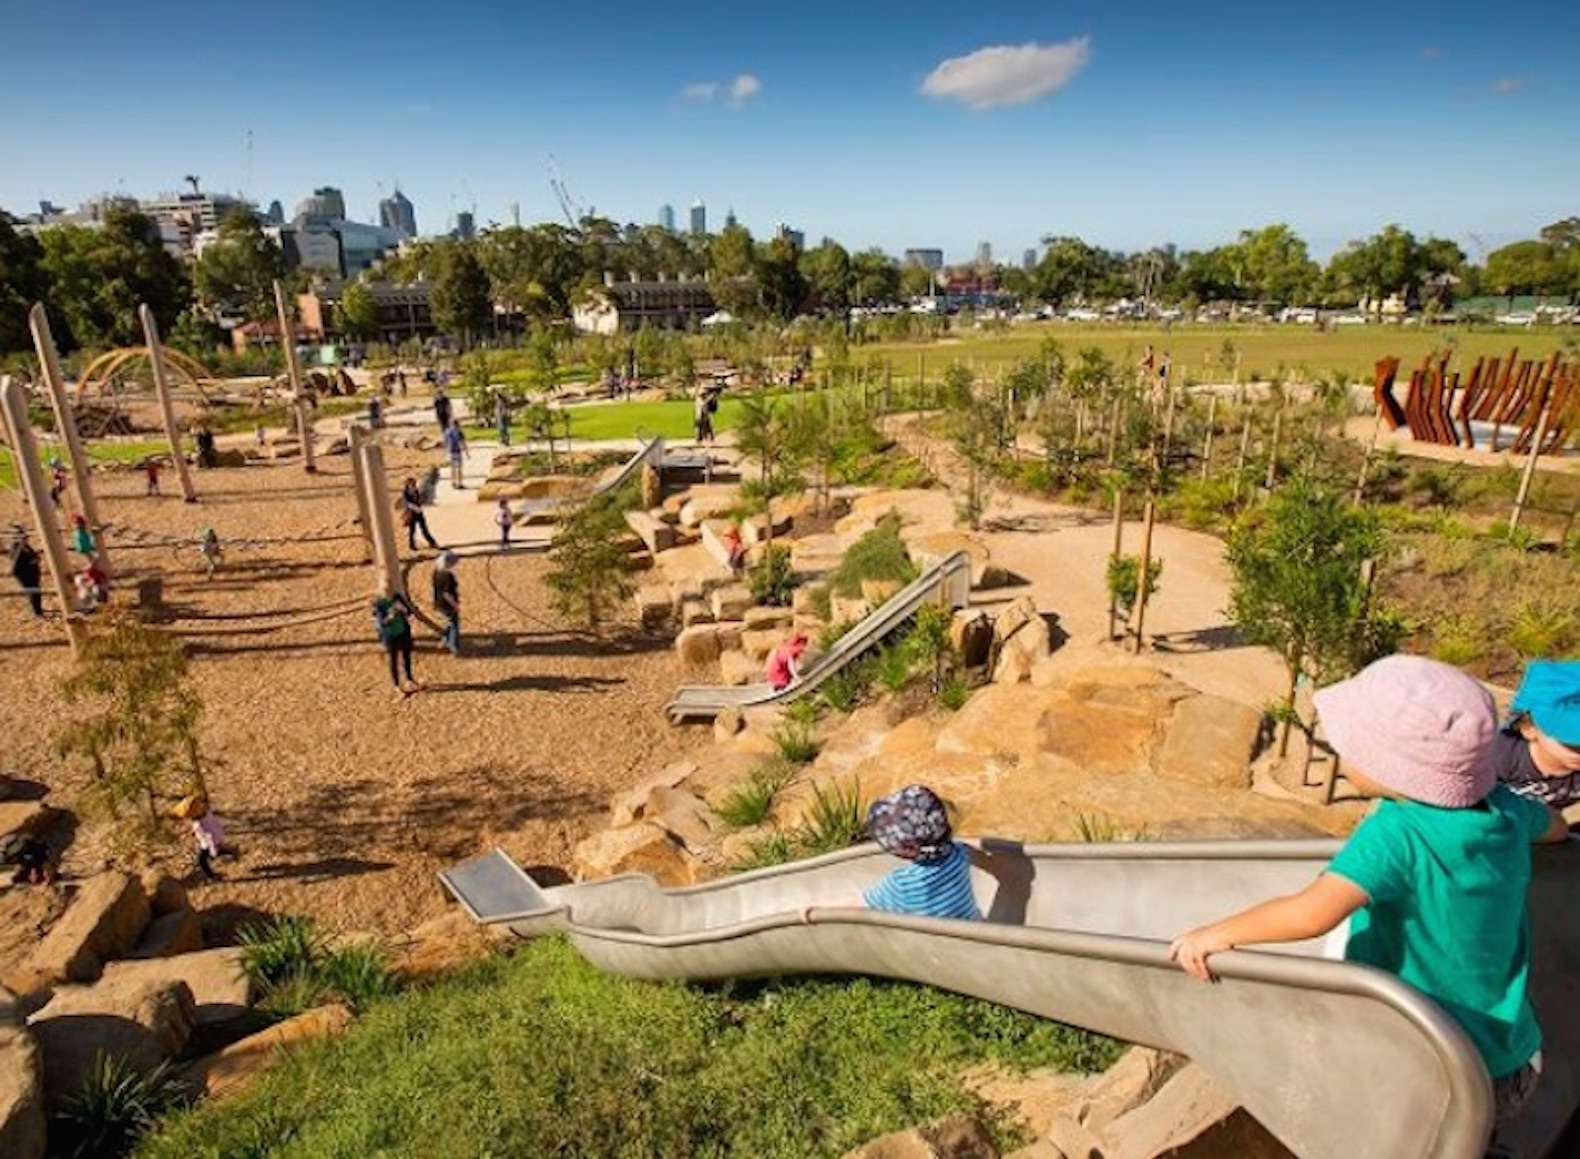 Australia's best outdoor playground is located in Melbourne